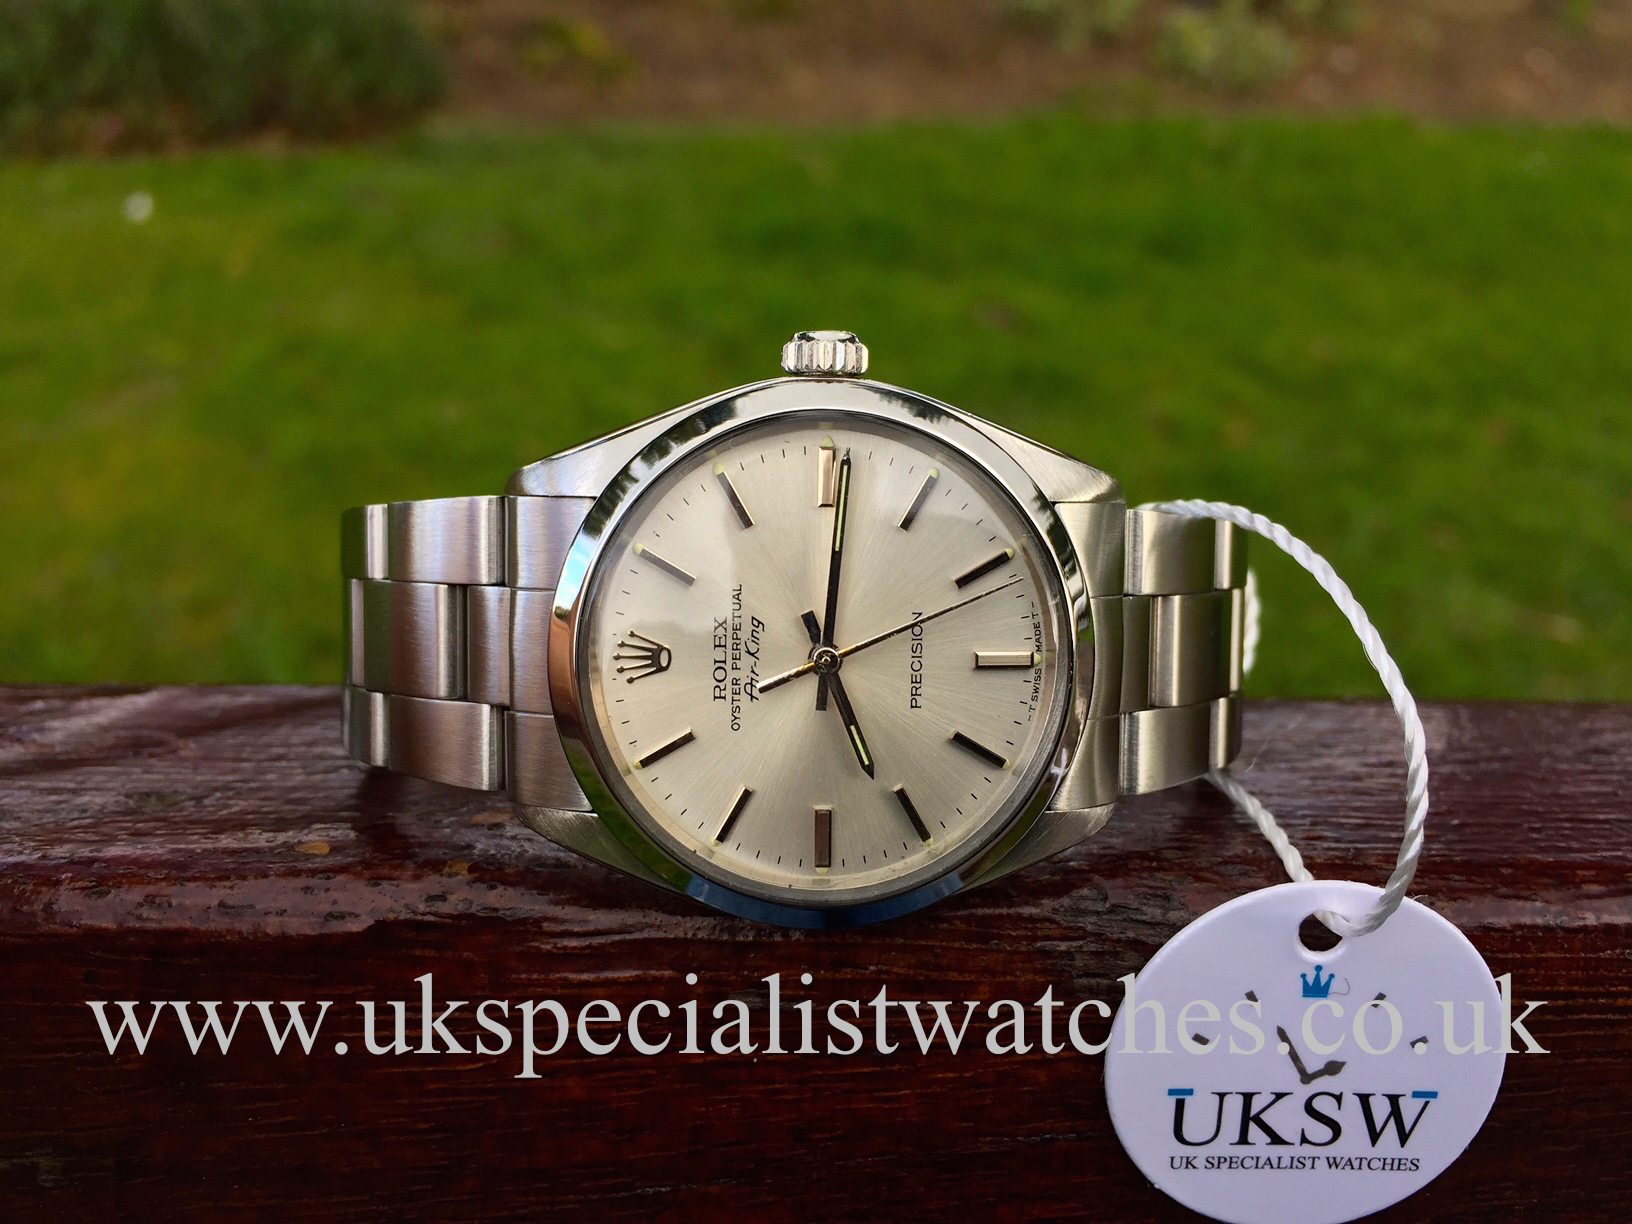 91aee4049279 Rolex Air king Precision 5500 Vintage 1982 - Silver Baton Dial - UK ...